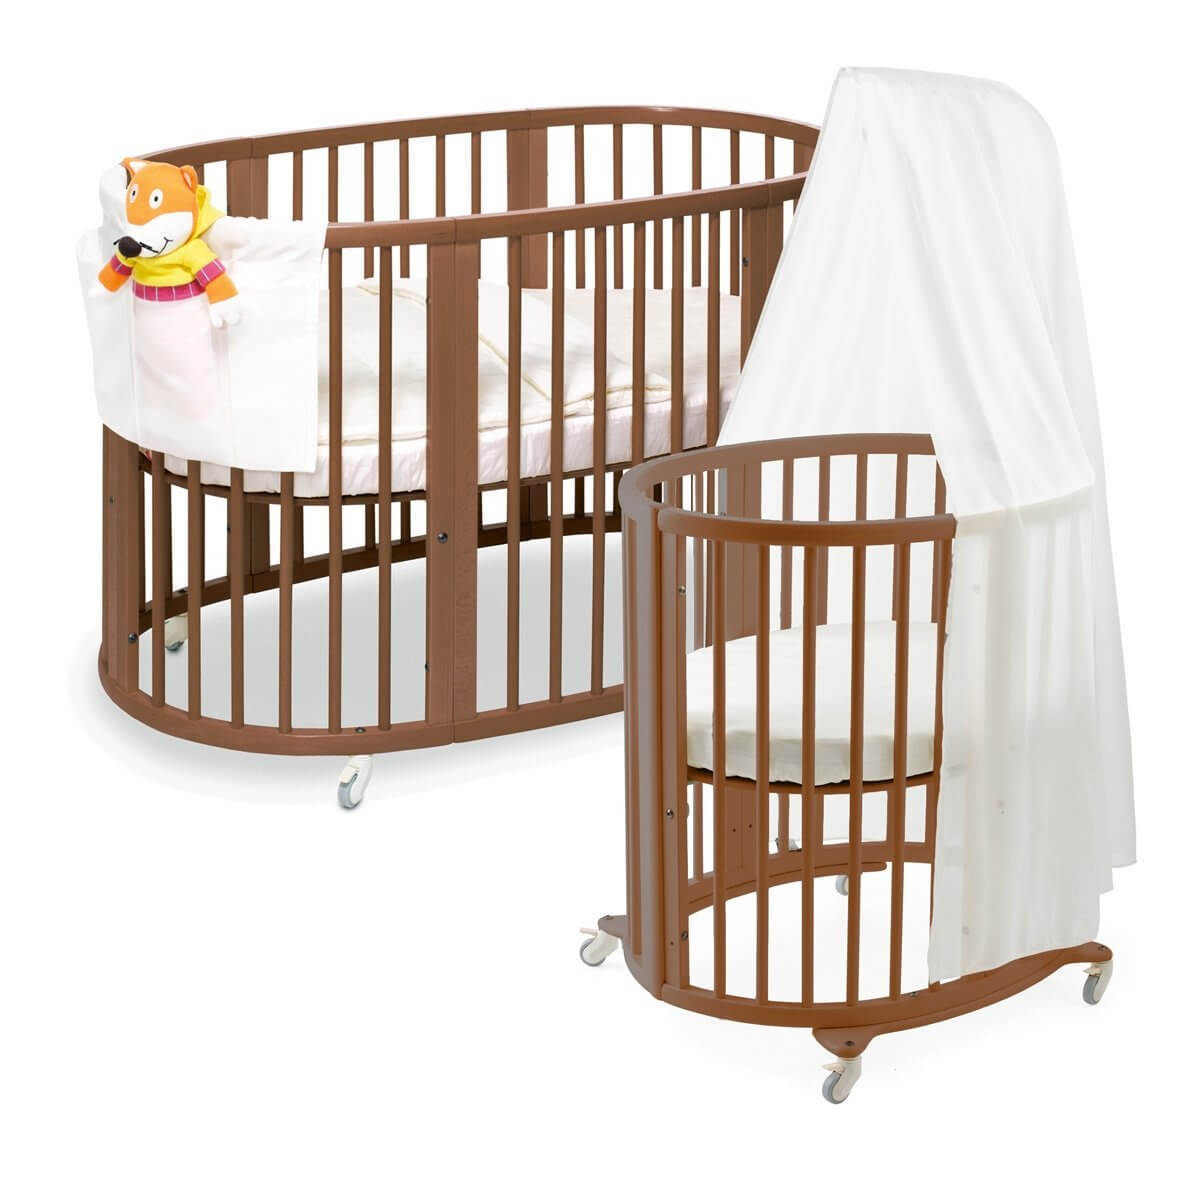 Design Round Baby Beds 16 beautiful oval round baby cribs for unique nursery decor cribs